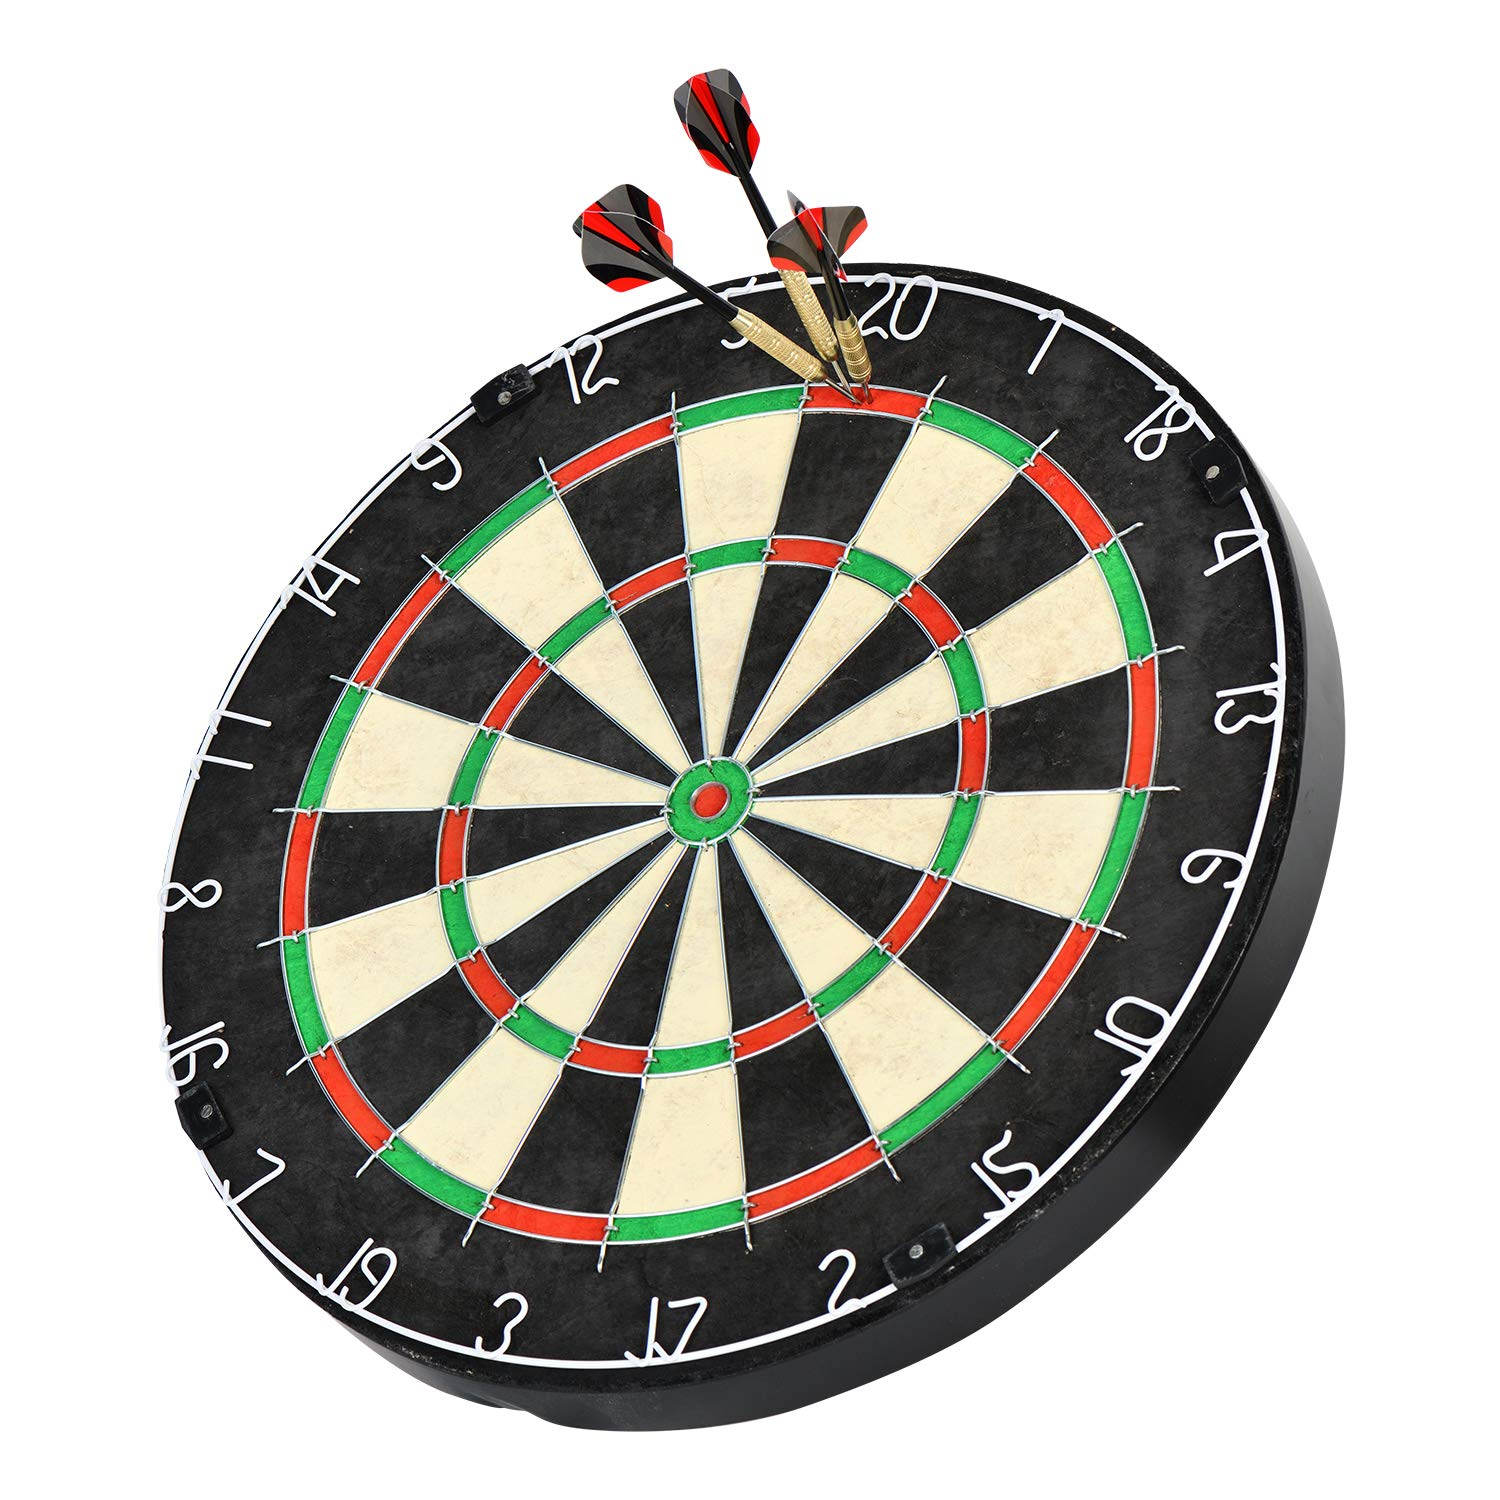 18'' Professional Bristle Dartboard with Staple-Free, blade wire, Self-Healing Sisal fiber